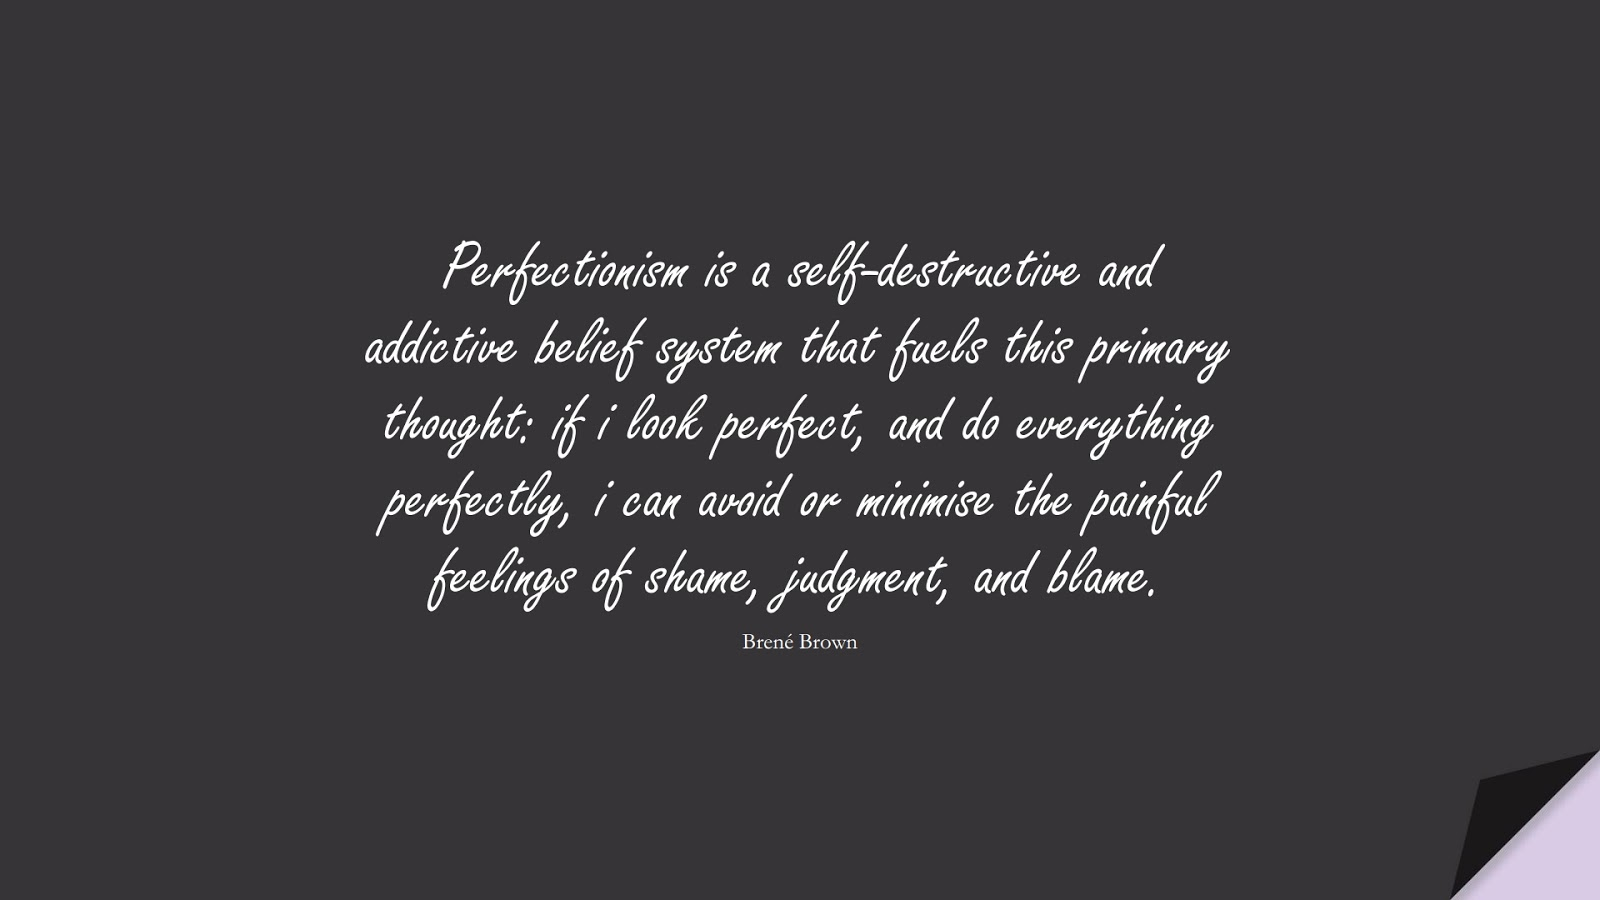 Perfectionism is a self-destructive and addictive belief system that fuels this primary thought: if i look perfect, and do everything perfectly, i can avoid or minimise the painful feelings of shame, judgment, and blame. (Brené Brown);  #SelfEsteemQuotes